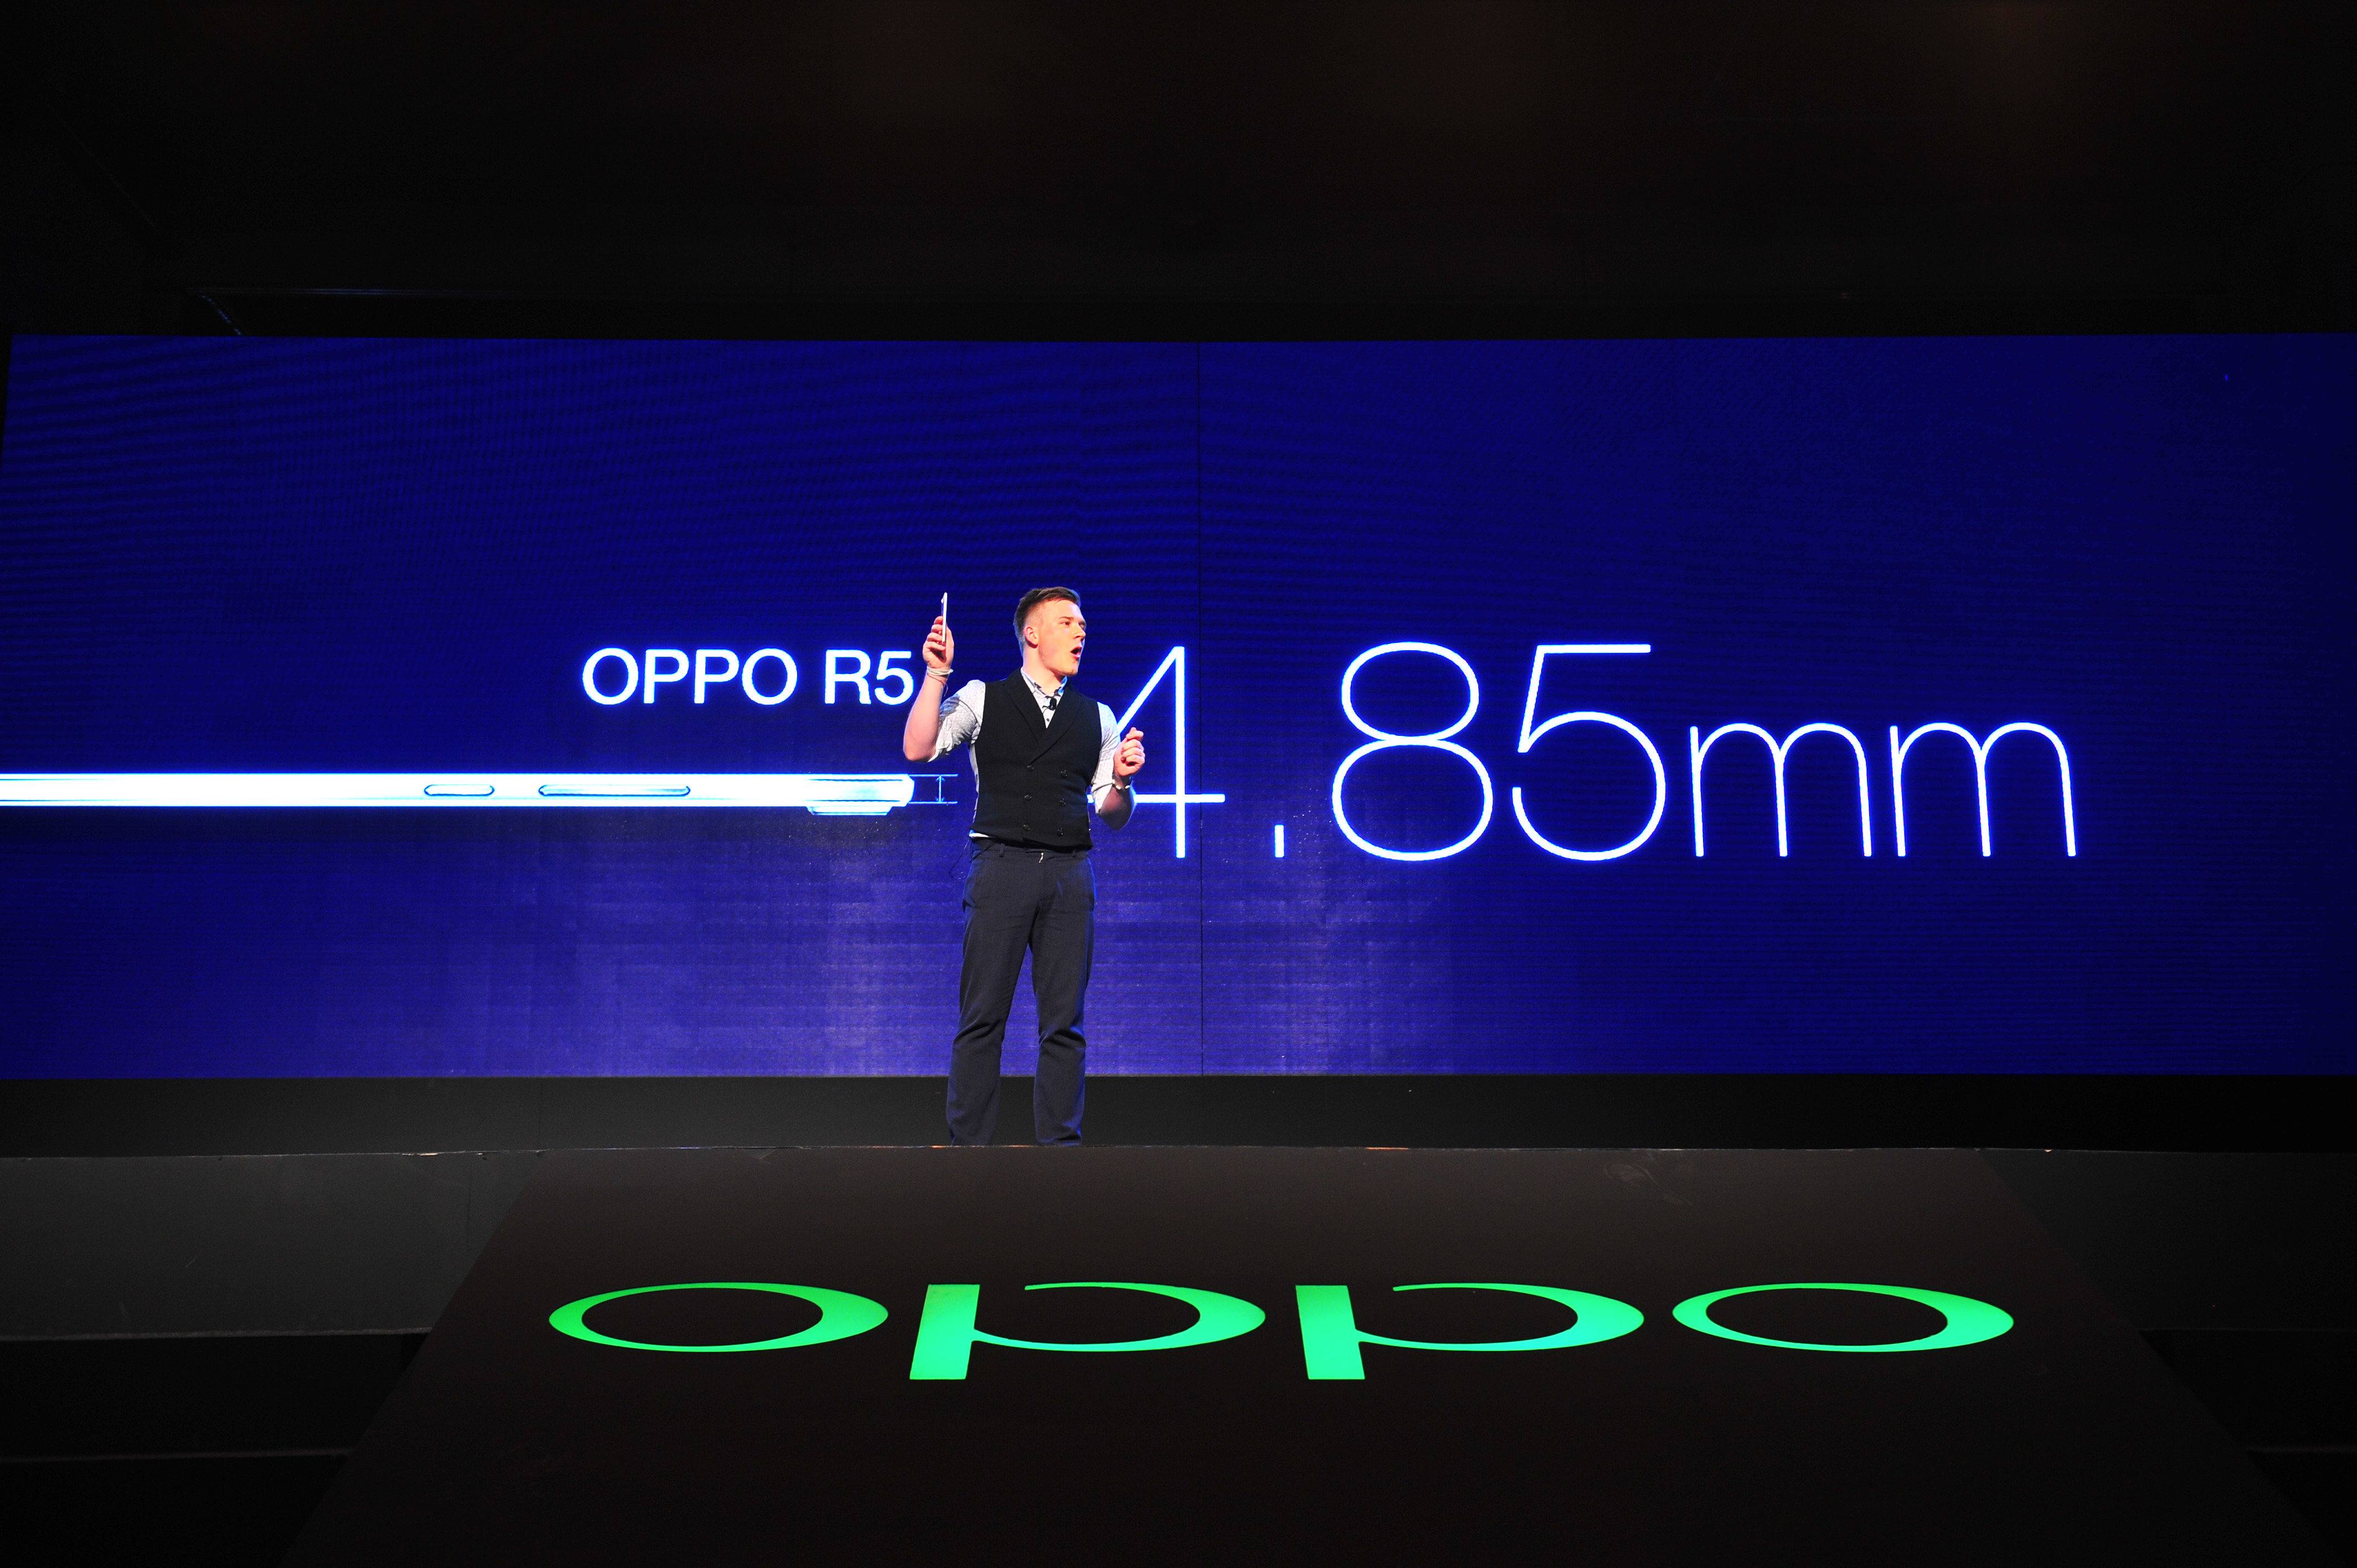 Oppo shines with top-end N3 and skinny R5 phones ...